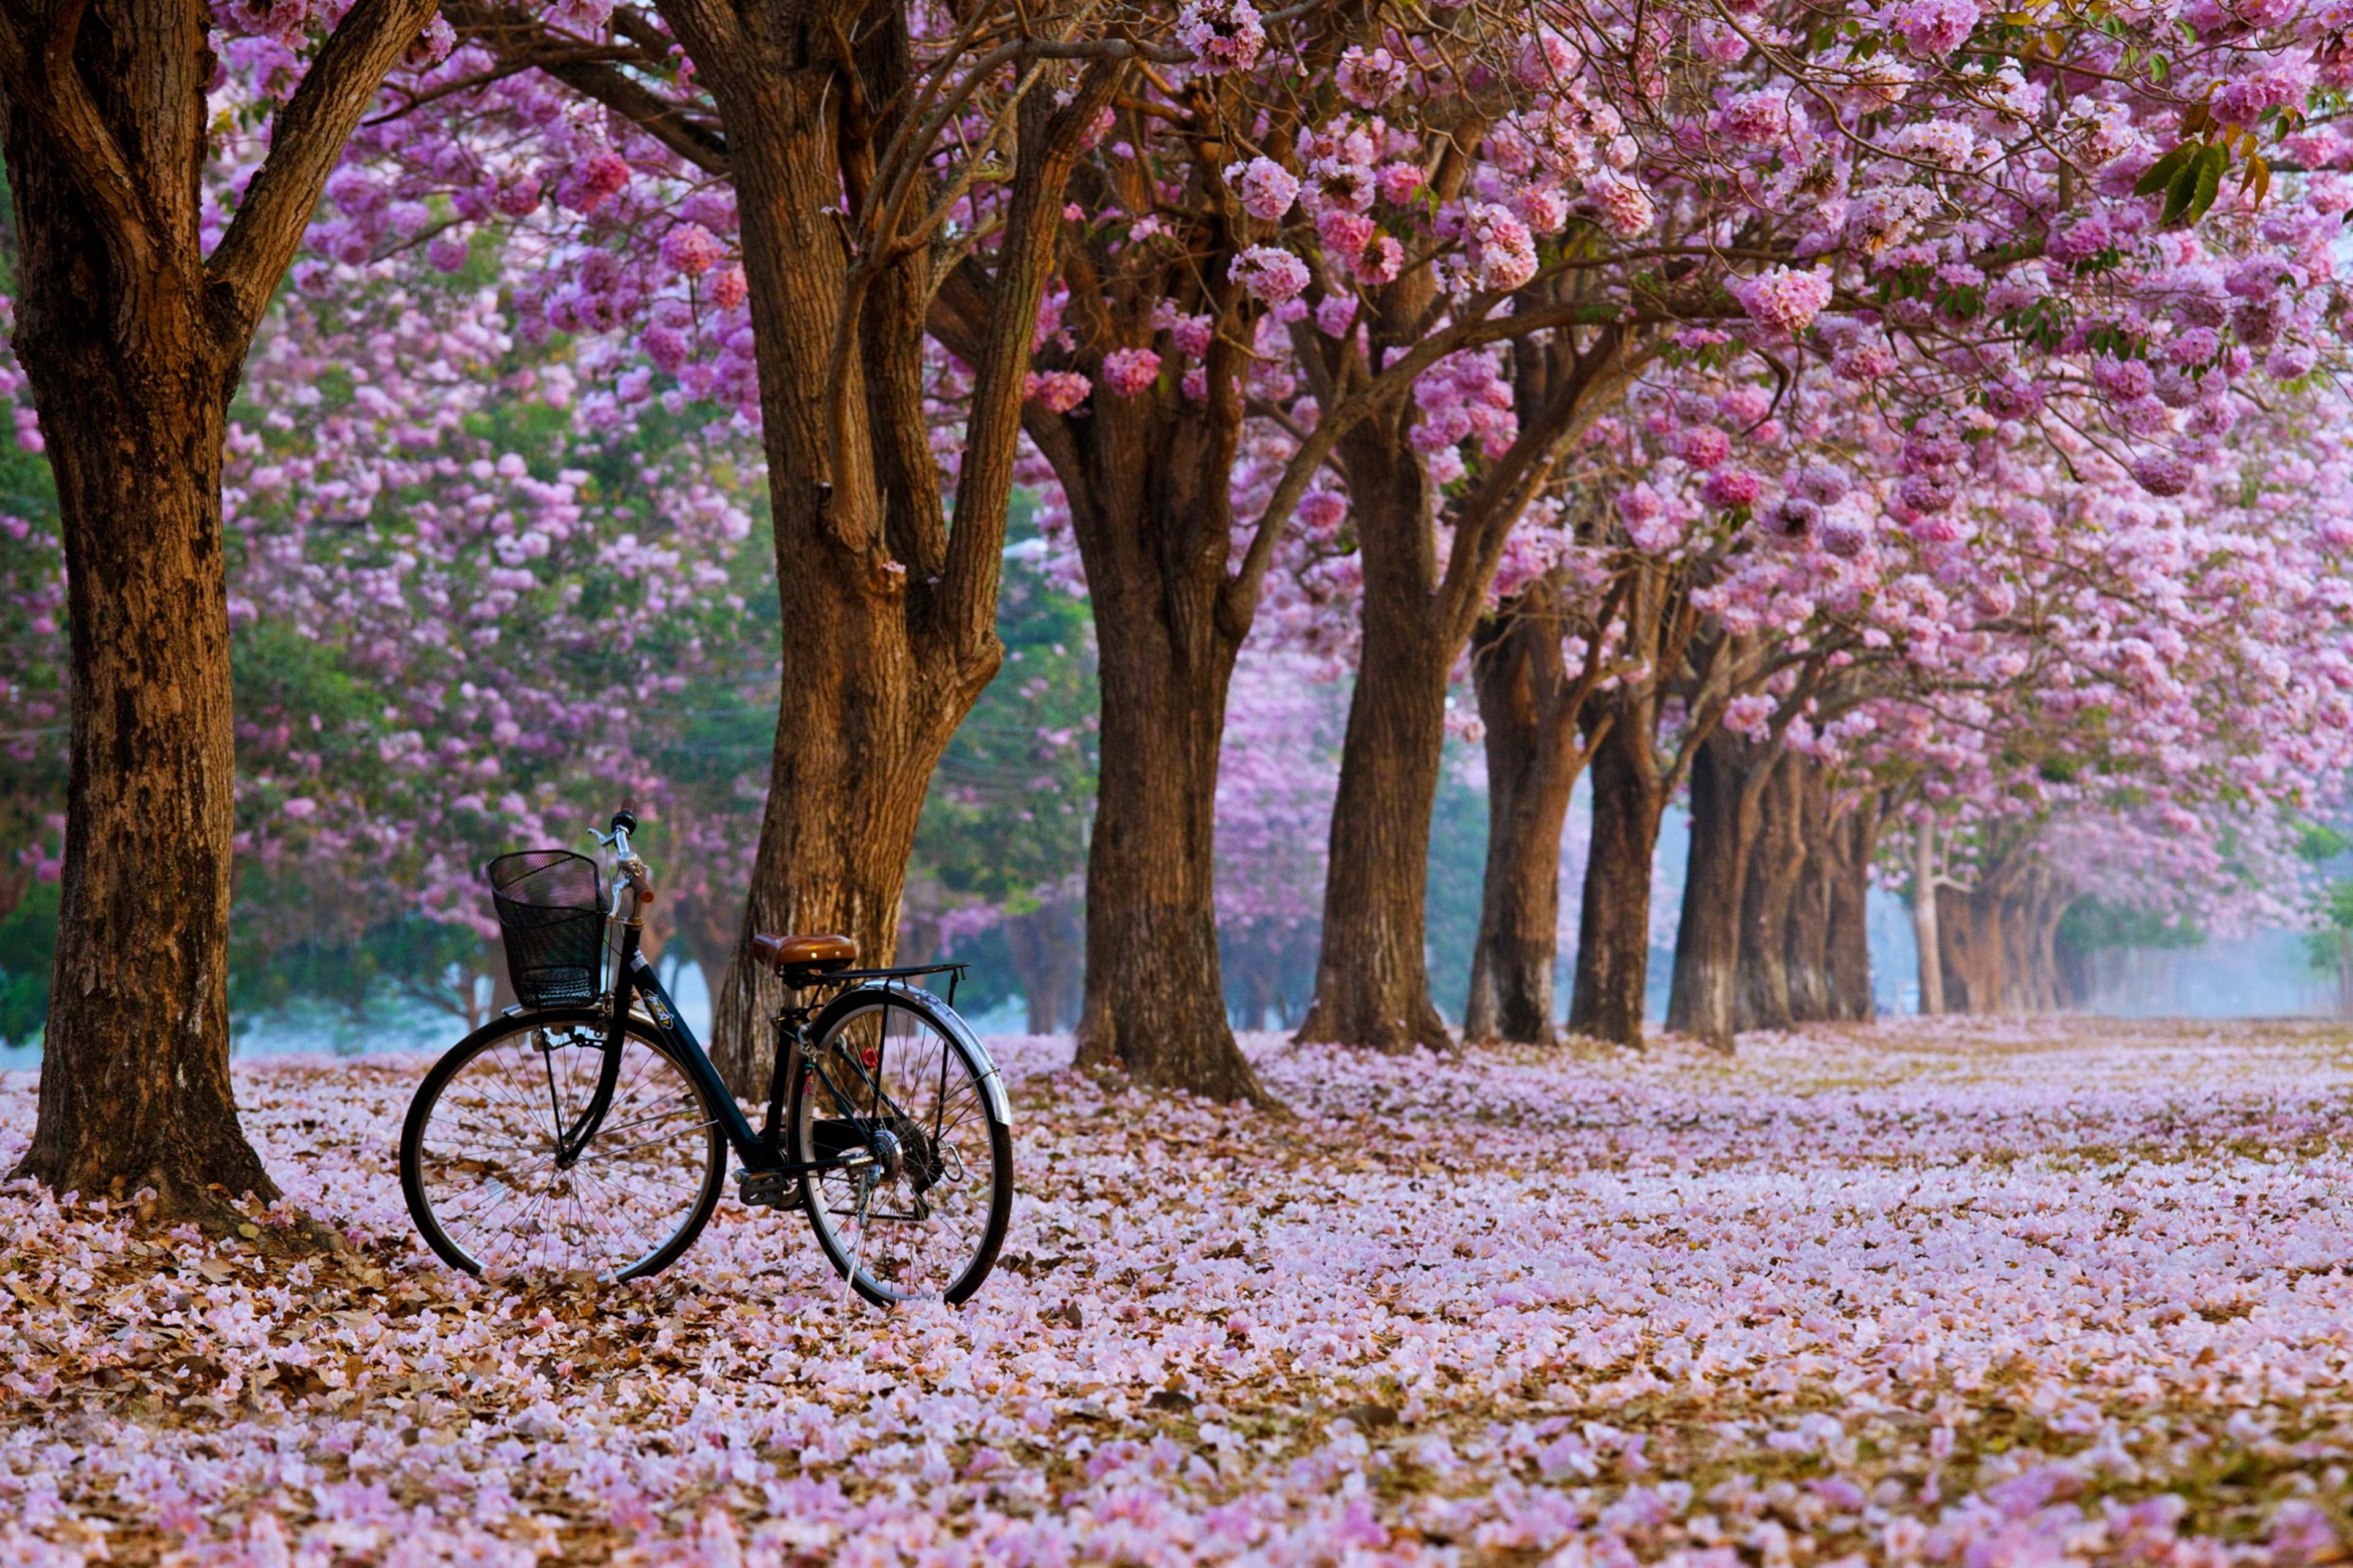 30 Spring Backgrounds Wallpapers Images Pictures